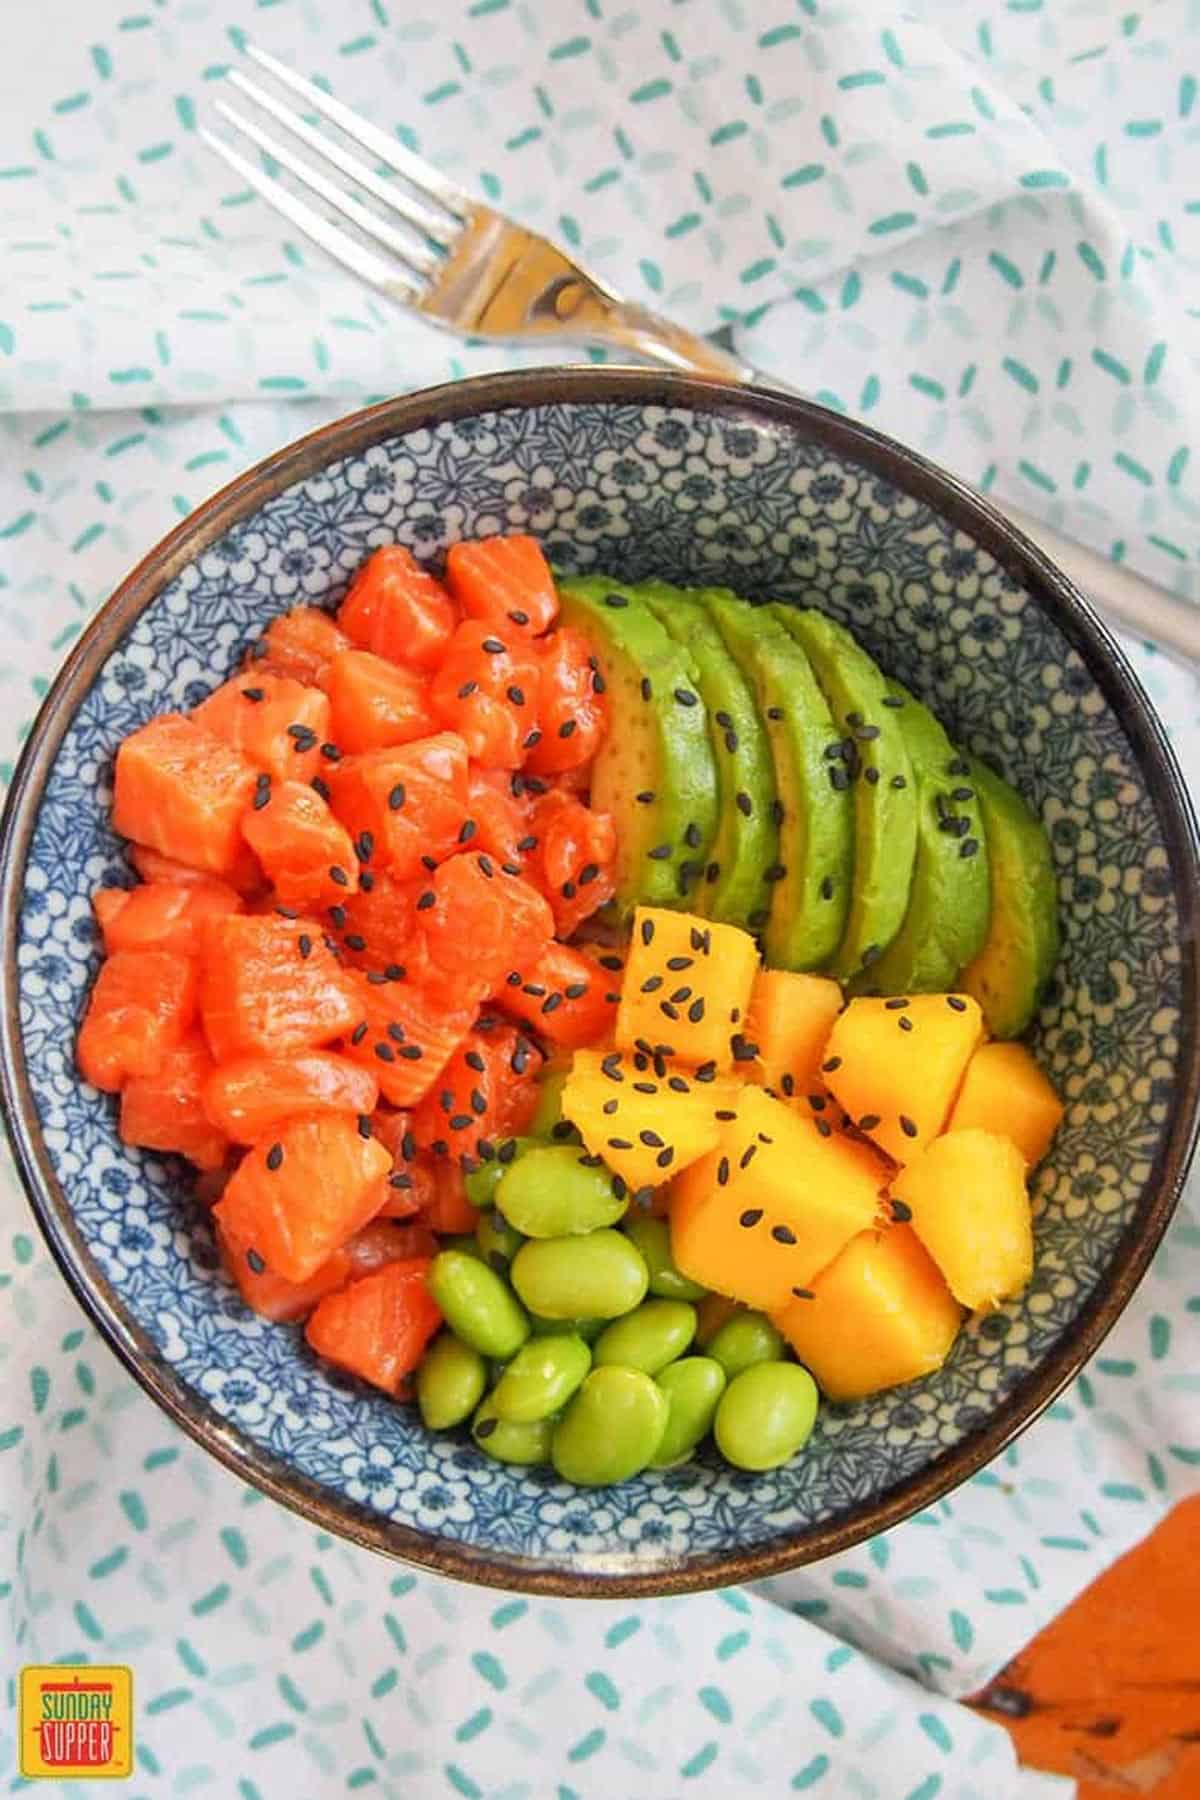 Top-down view of salmon poke bowl with avocado slices, diced mango, and edamame, topped with sesame seeds